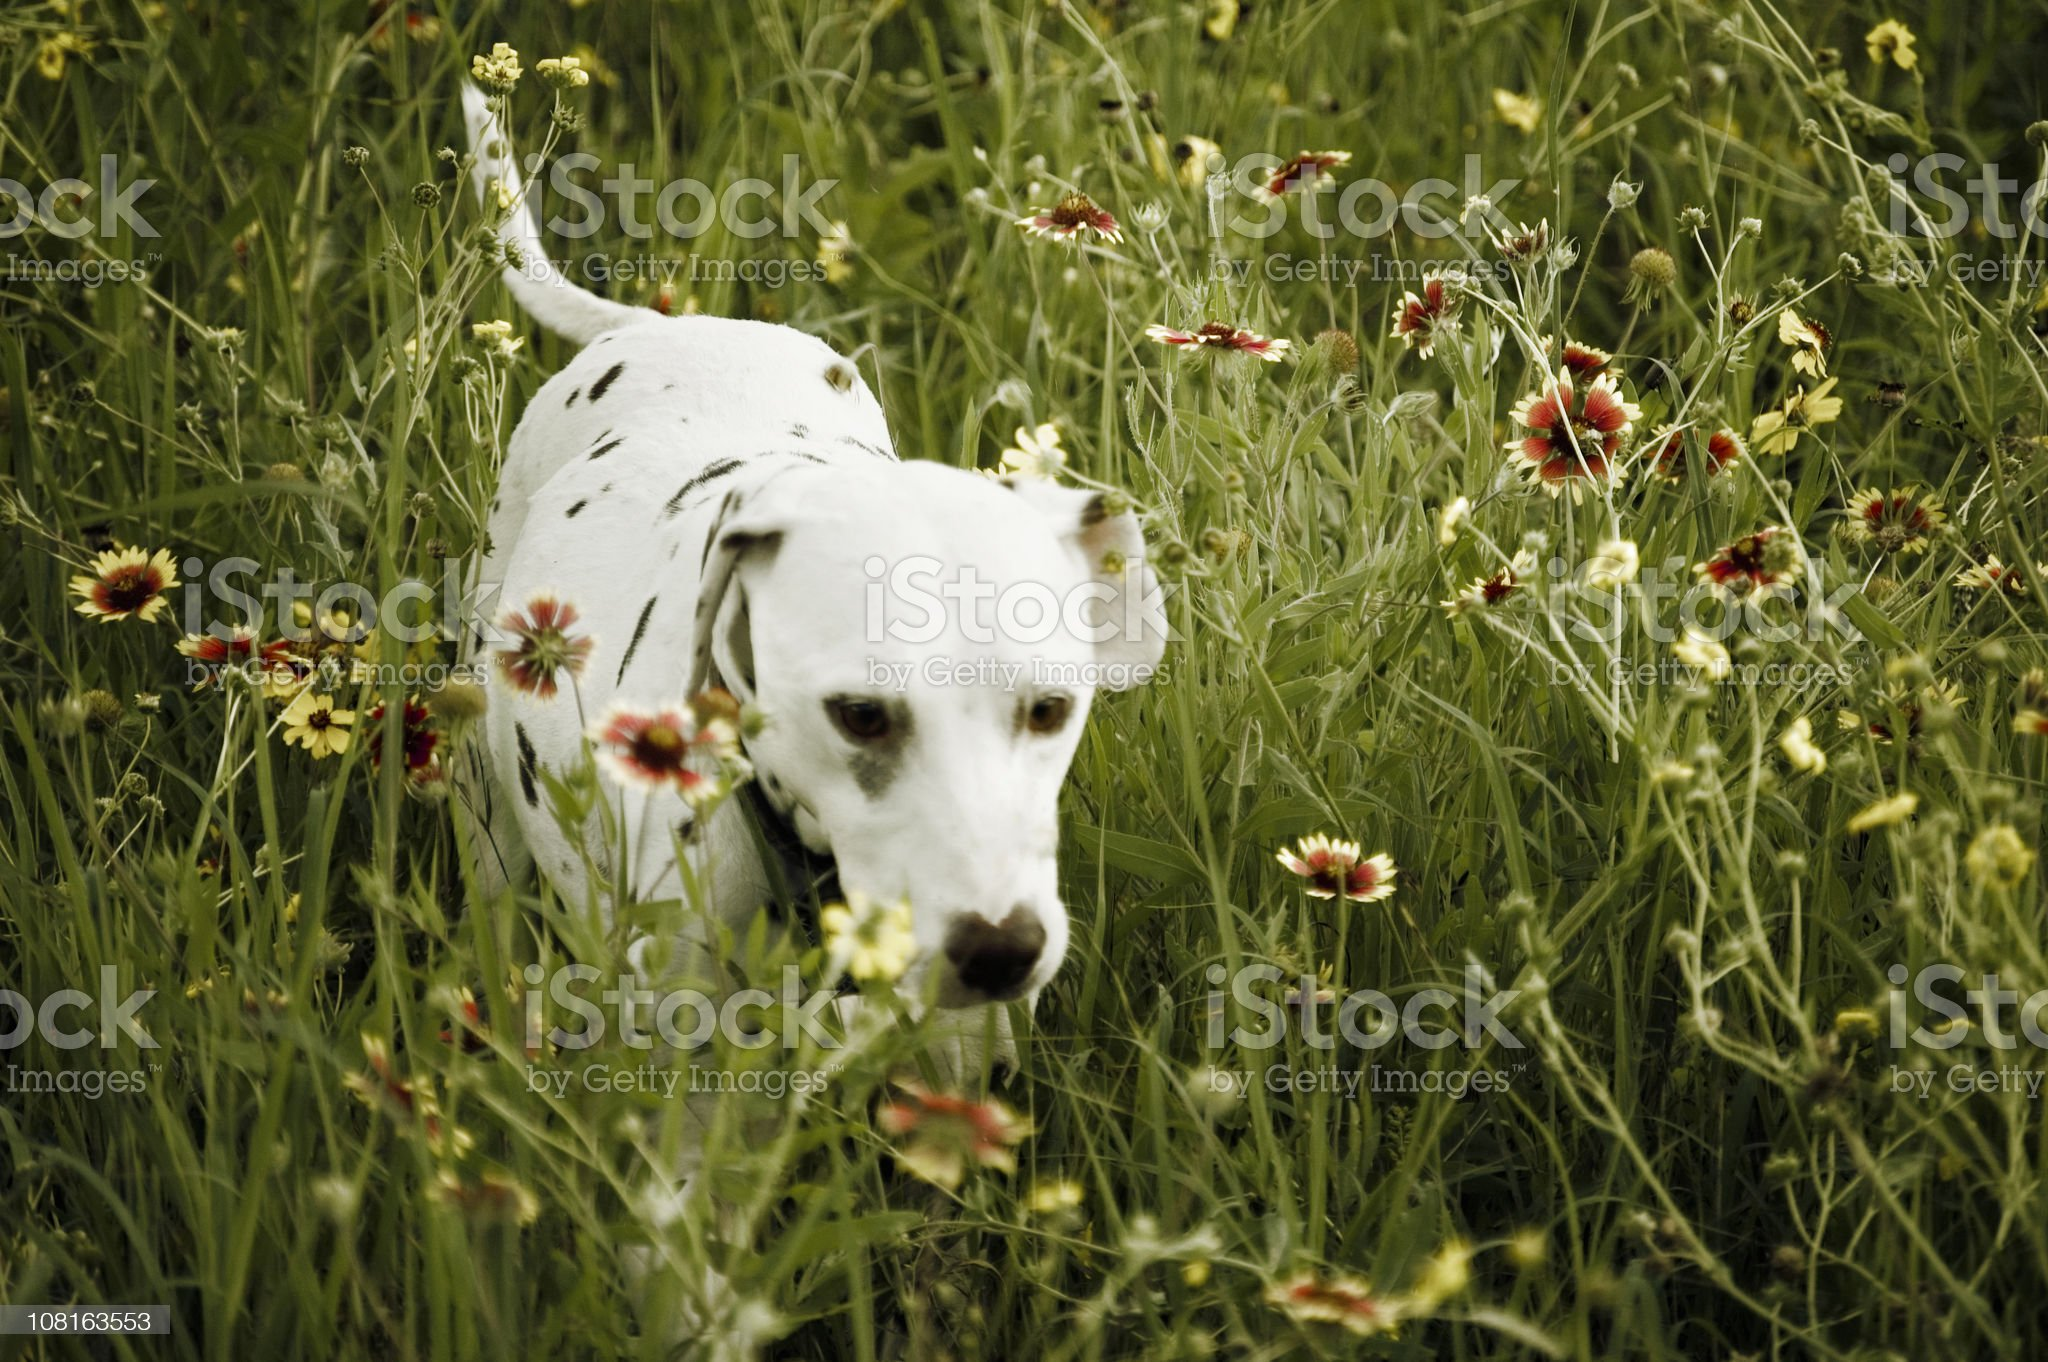 Dalmatian Dog in Tall Grass with Wildflowers royalty-free stock photo